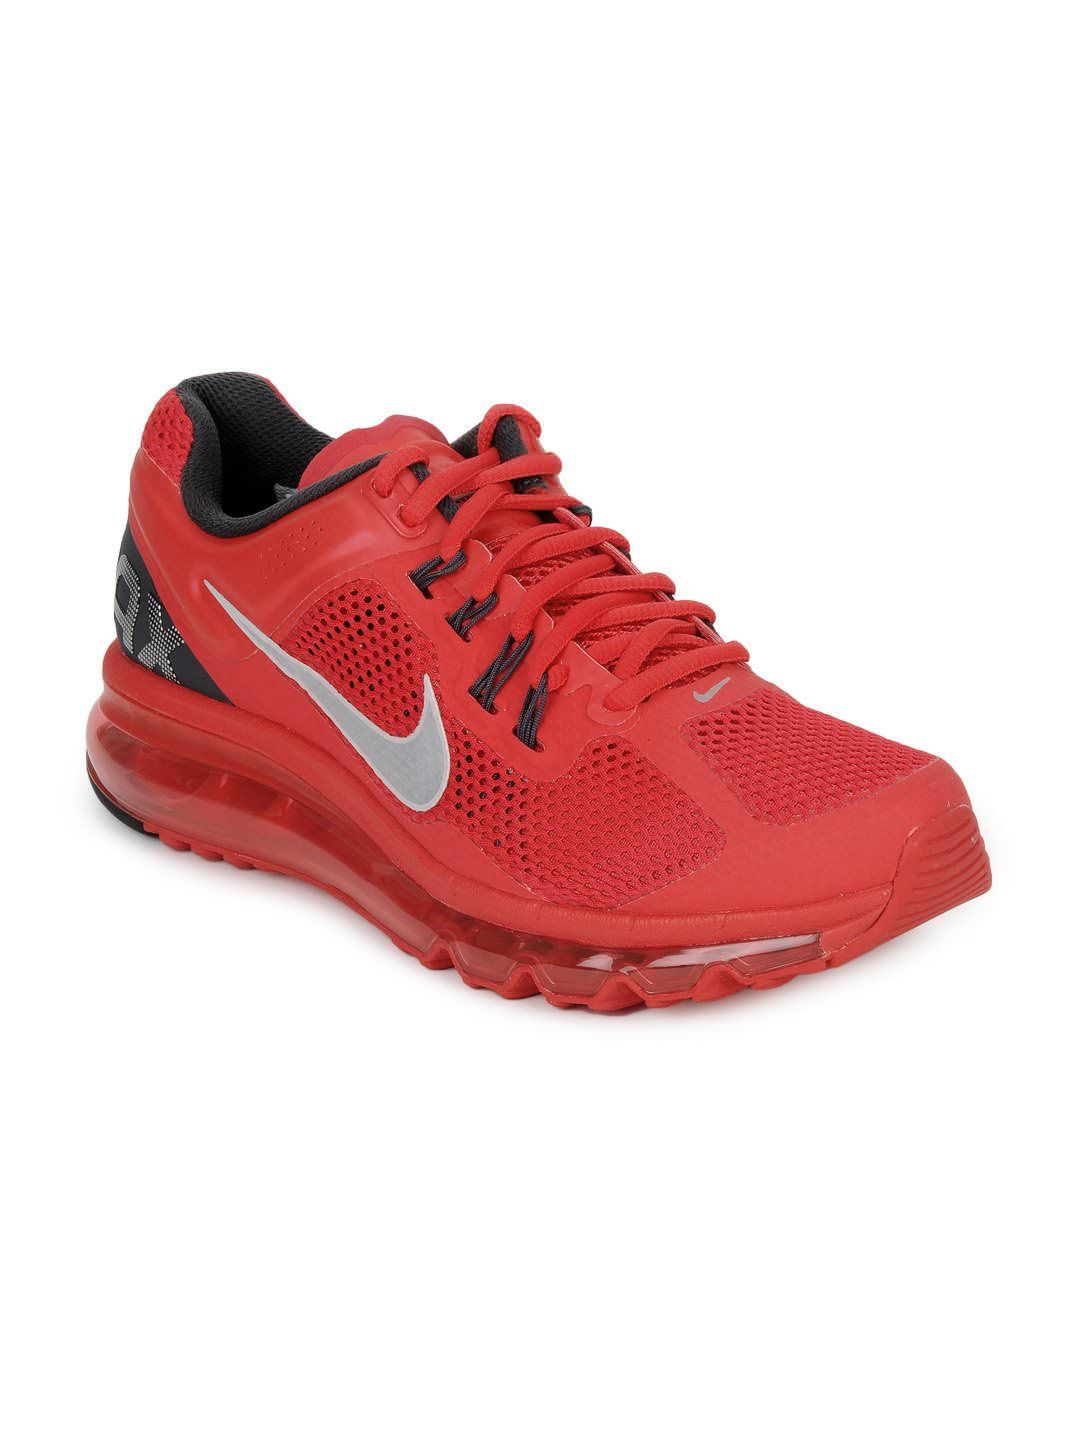 nike shoes for men 2013